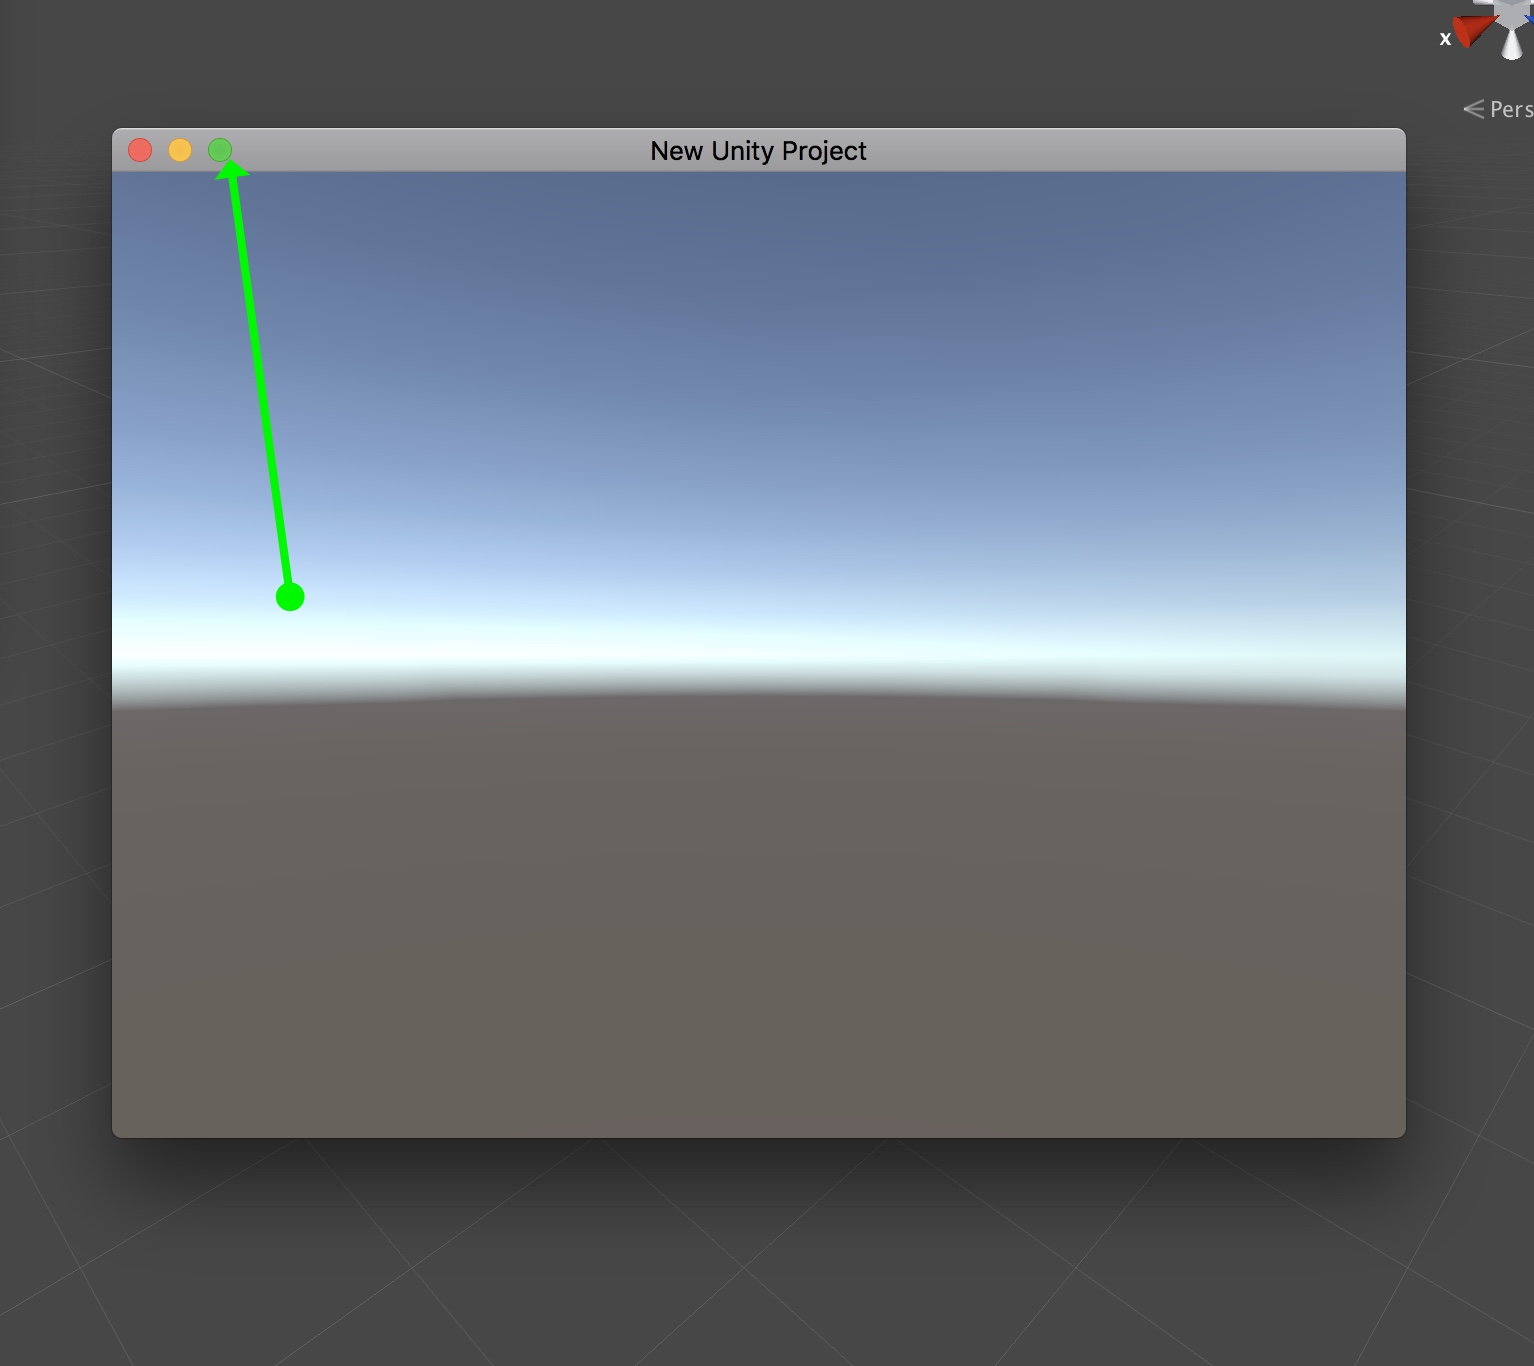 Cannot exit full screen mode - Unity Forum